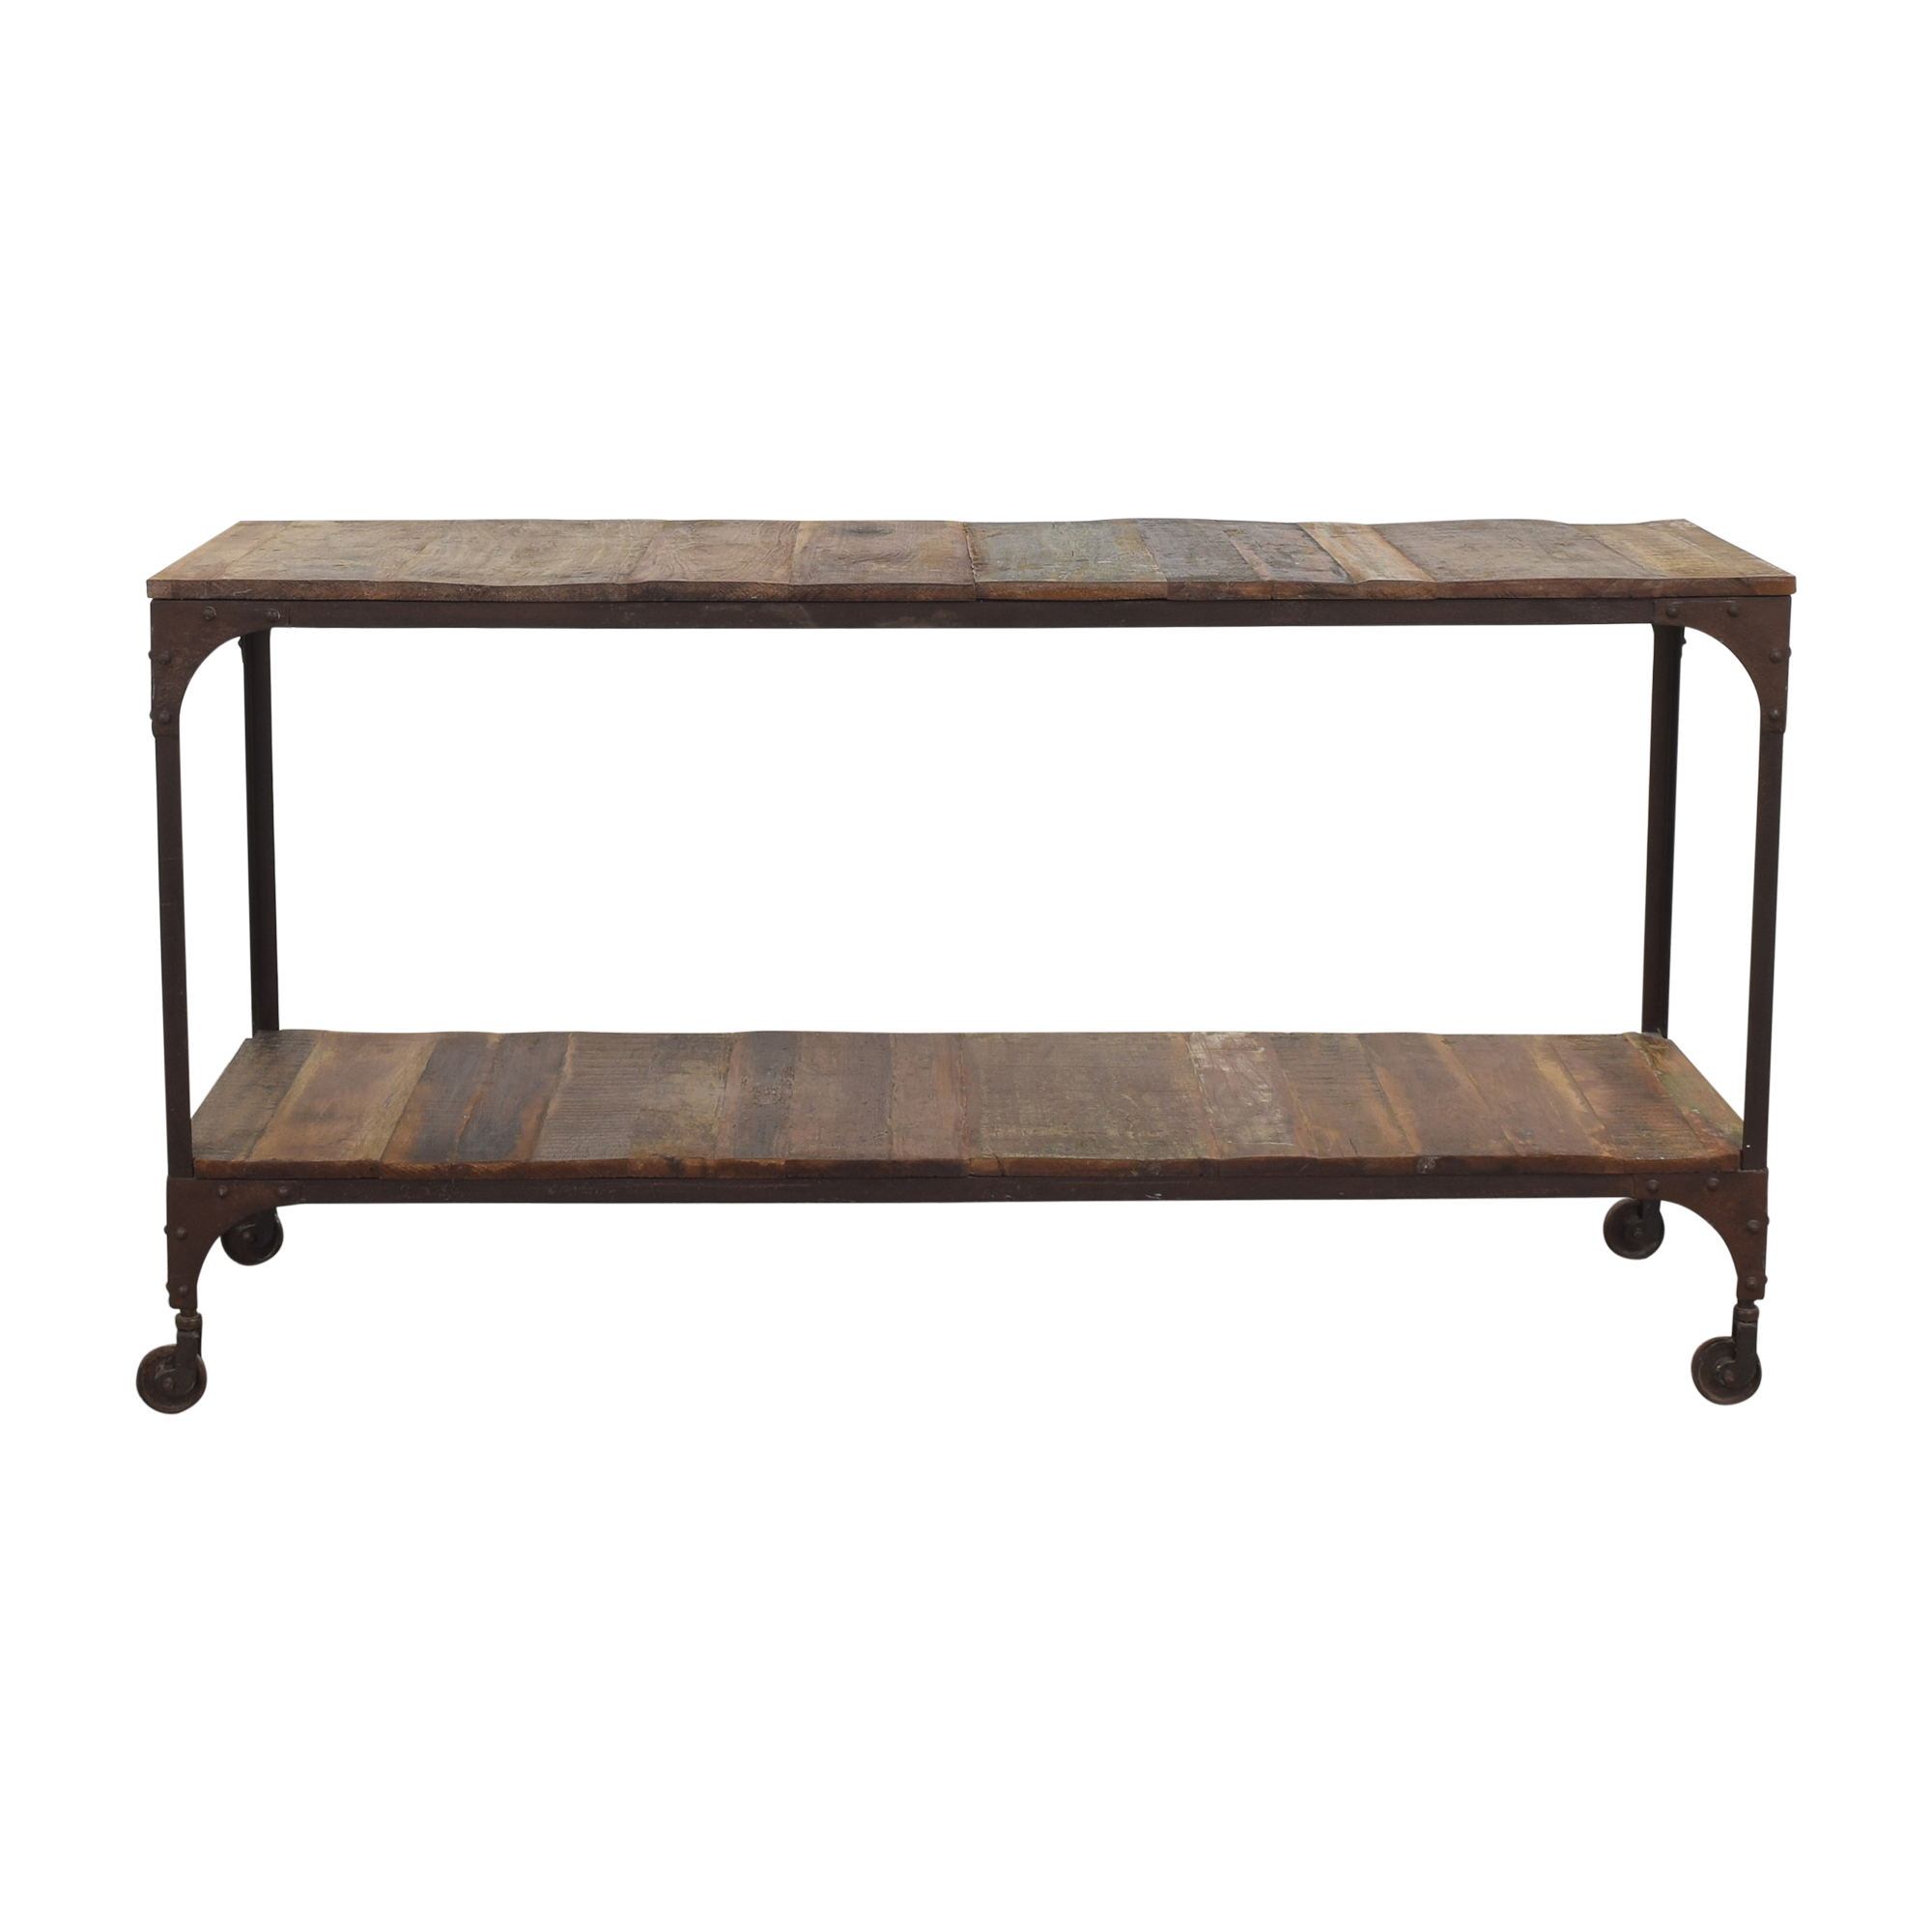 West Elm West Elm Rolling Console Table on sale